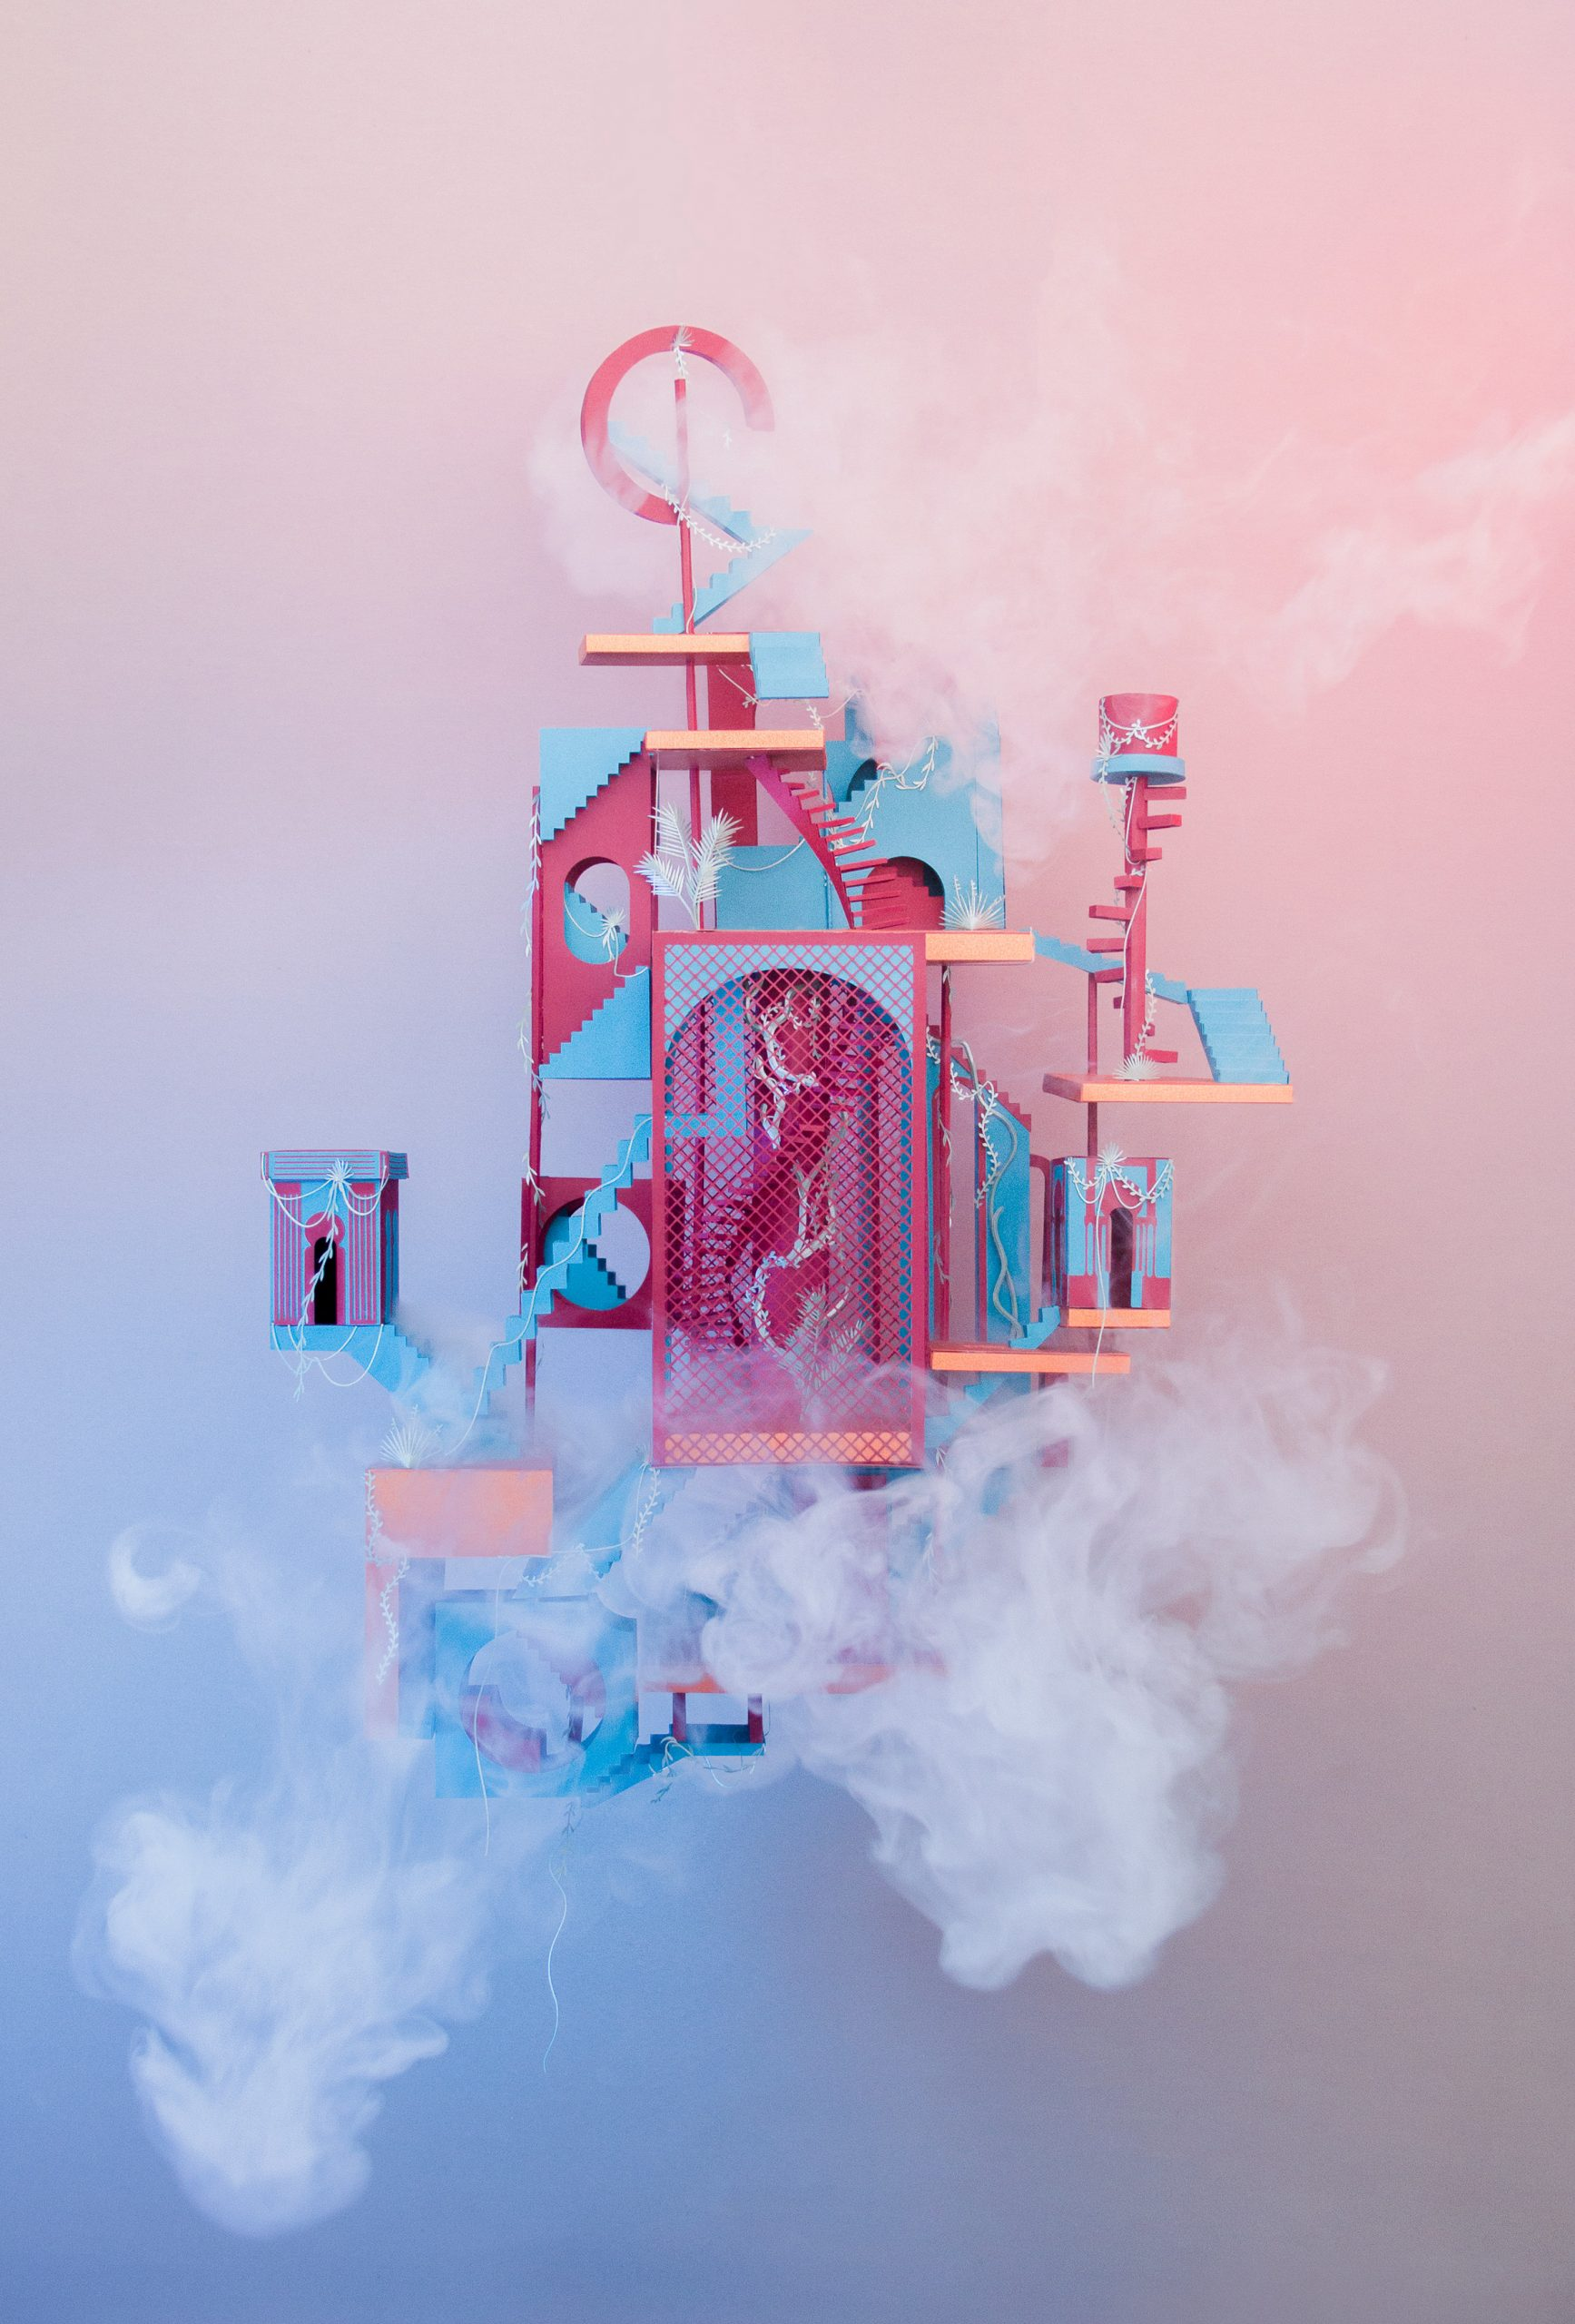 Invisible Cities by Camille Benoit and Mariana Gella